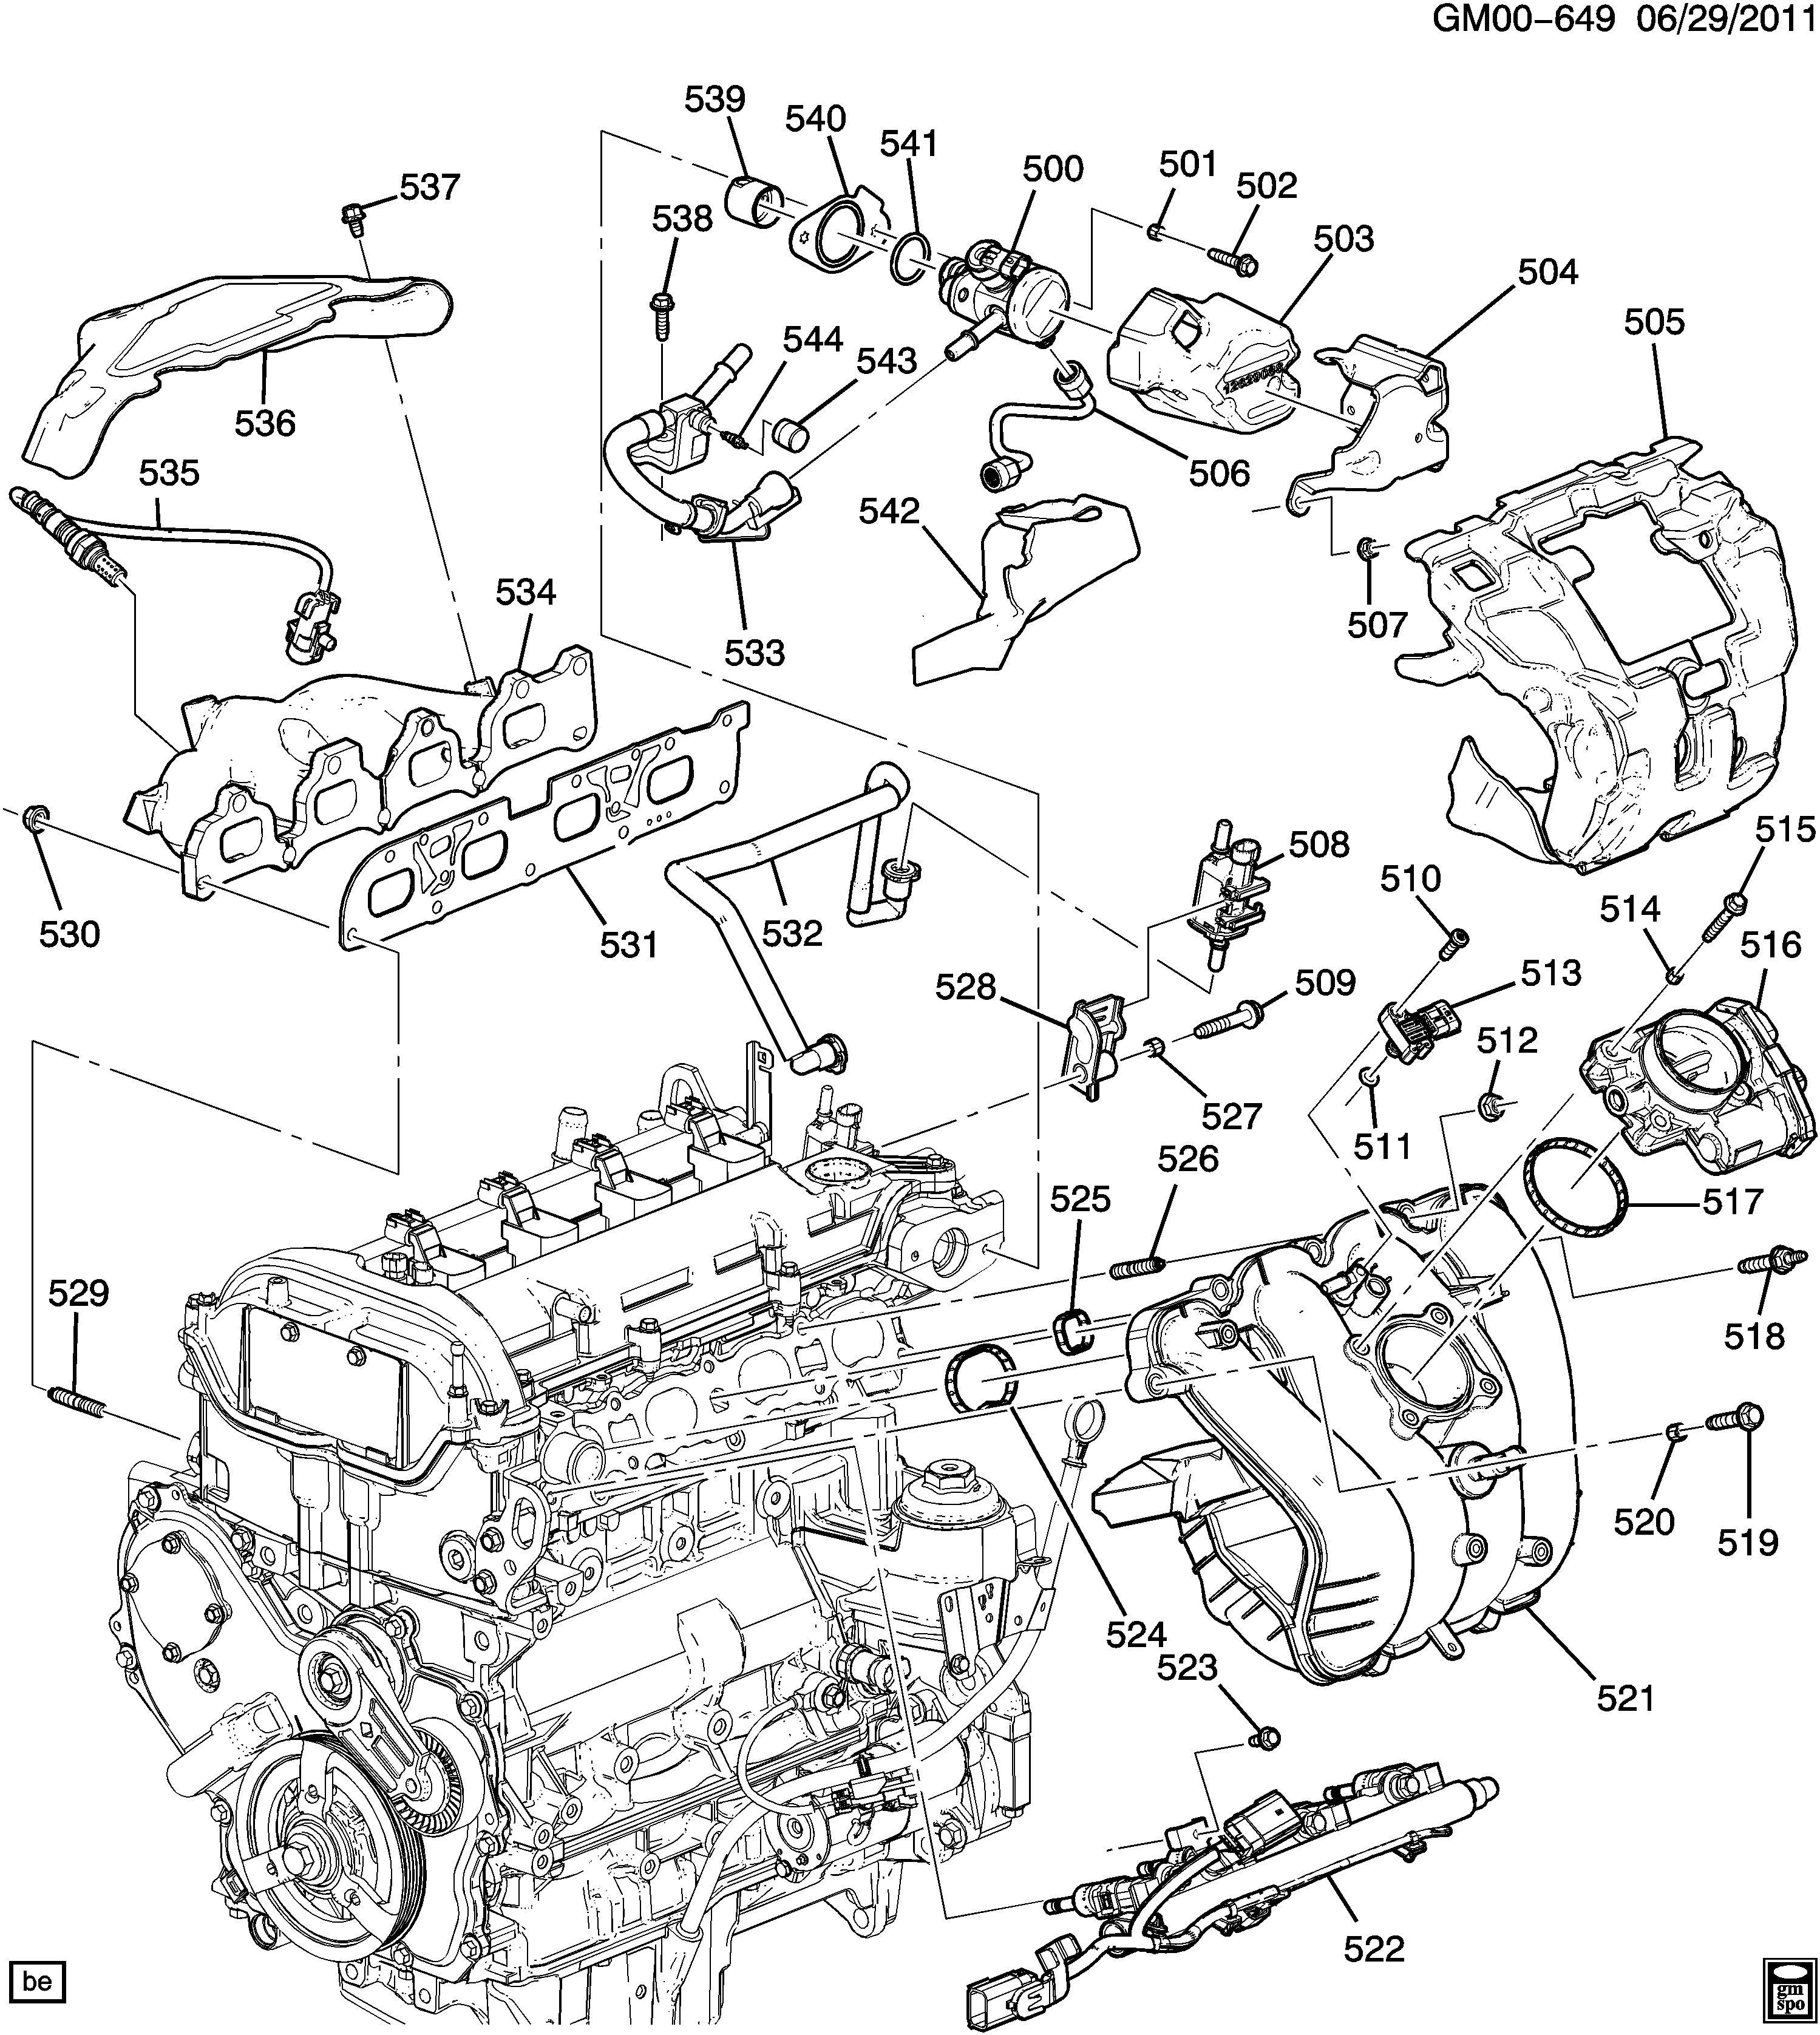 Eh 6455  Gmc Sierra Replacement Parts Motor Repalcement